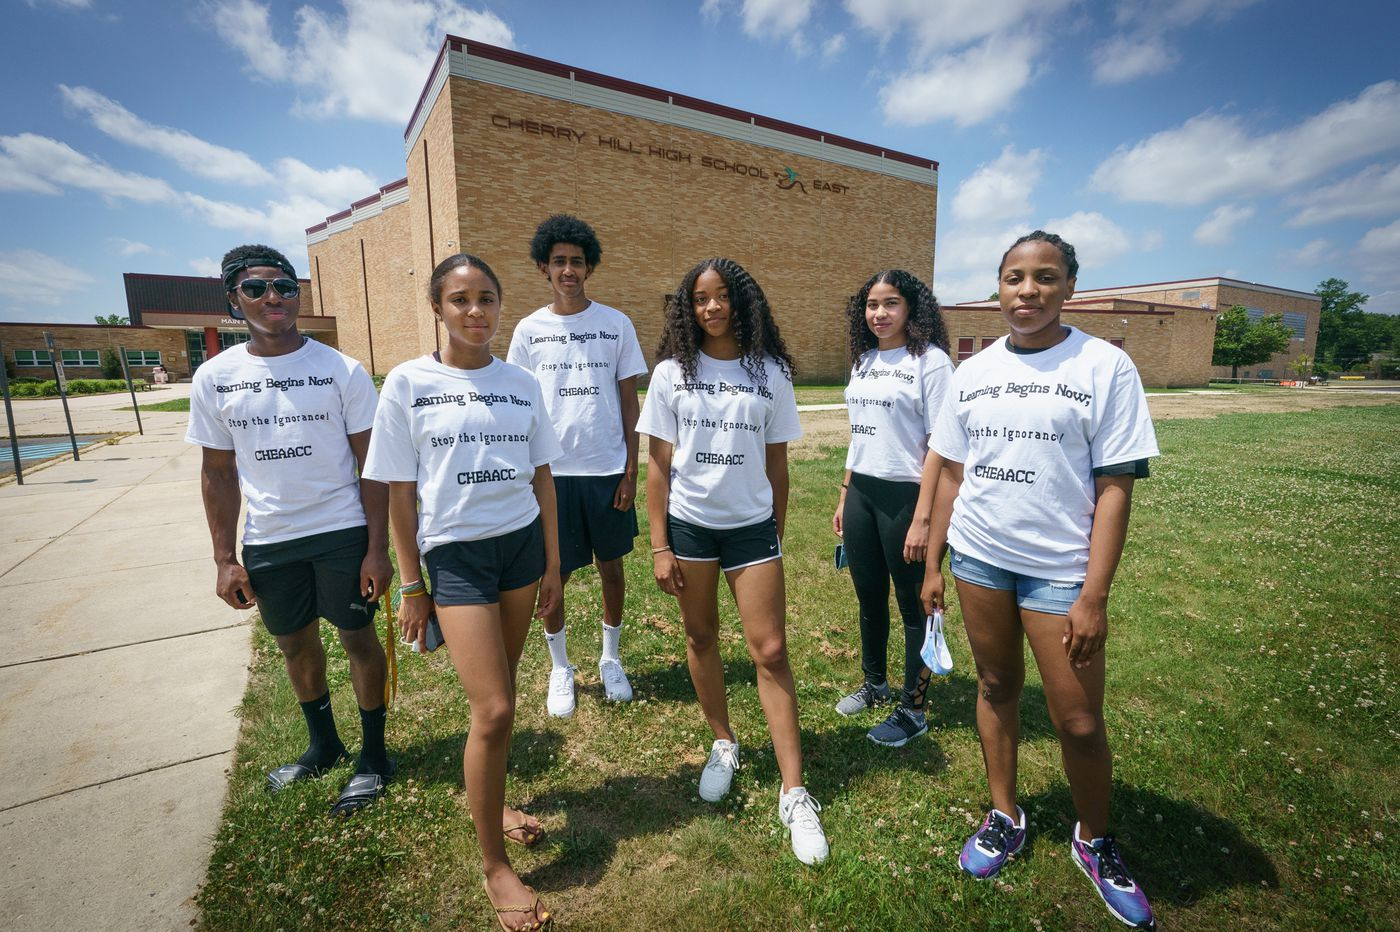 Philly-area students, alumni are demanding their schools address systemic racism